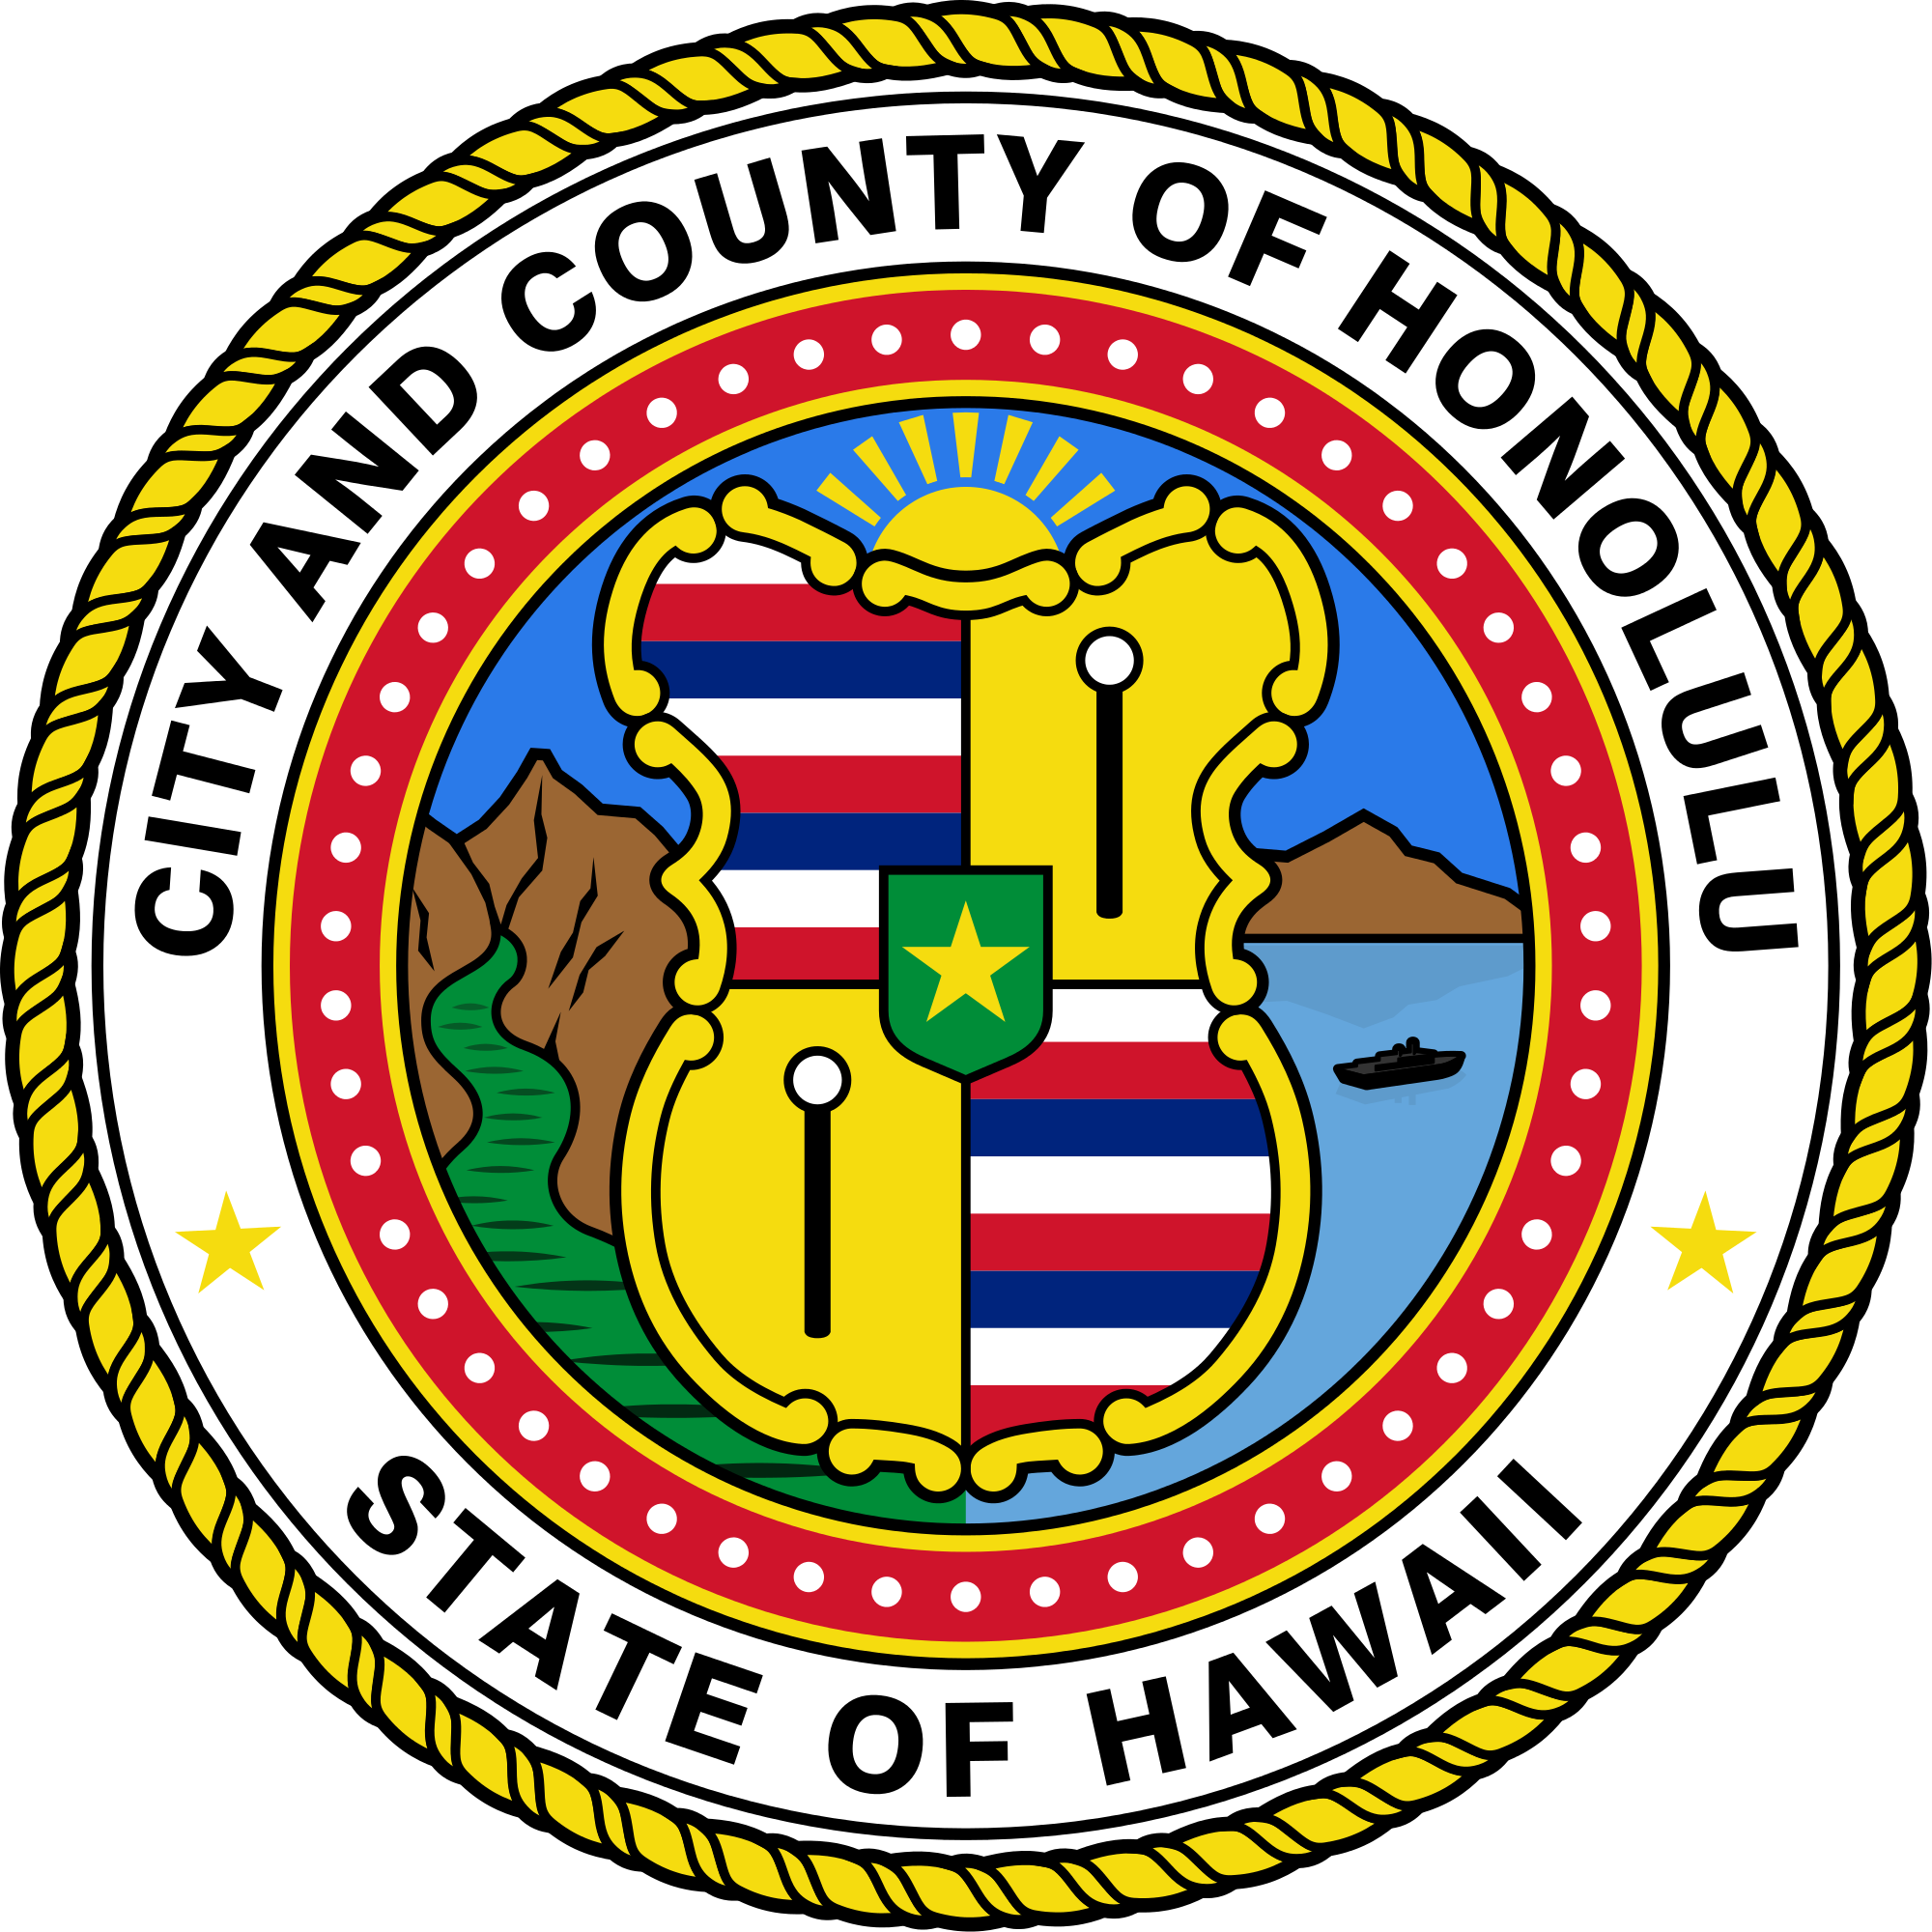 City & County of Honolulu